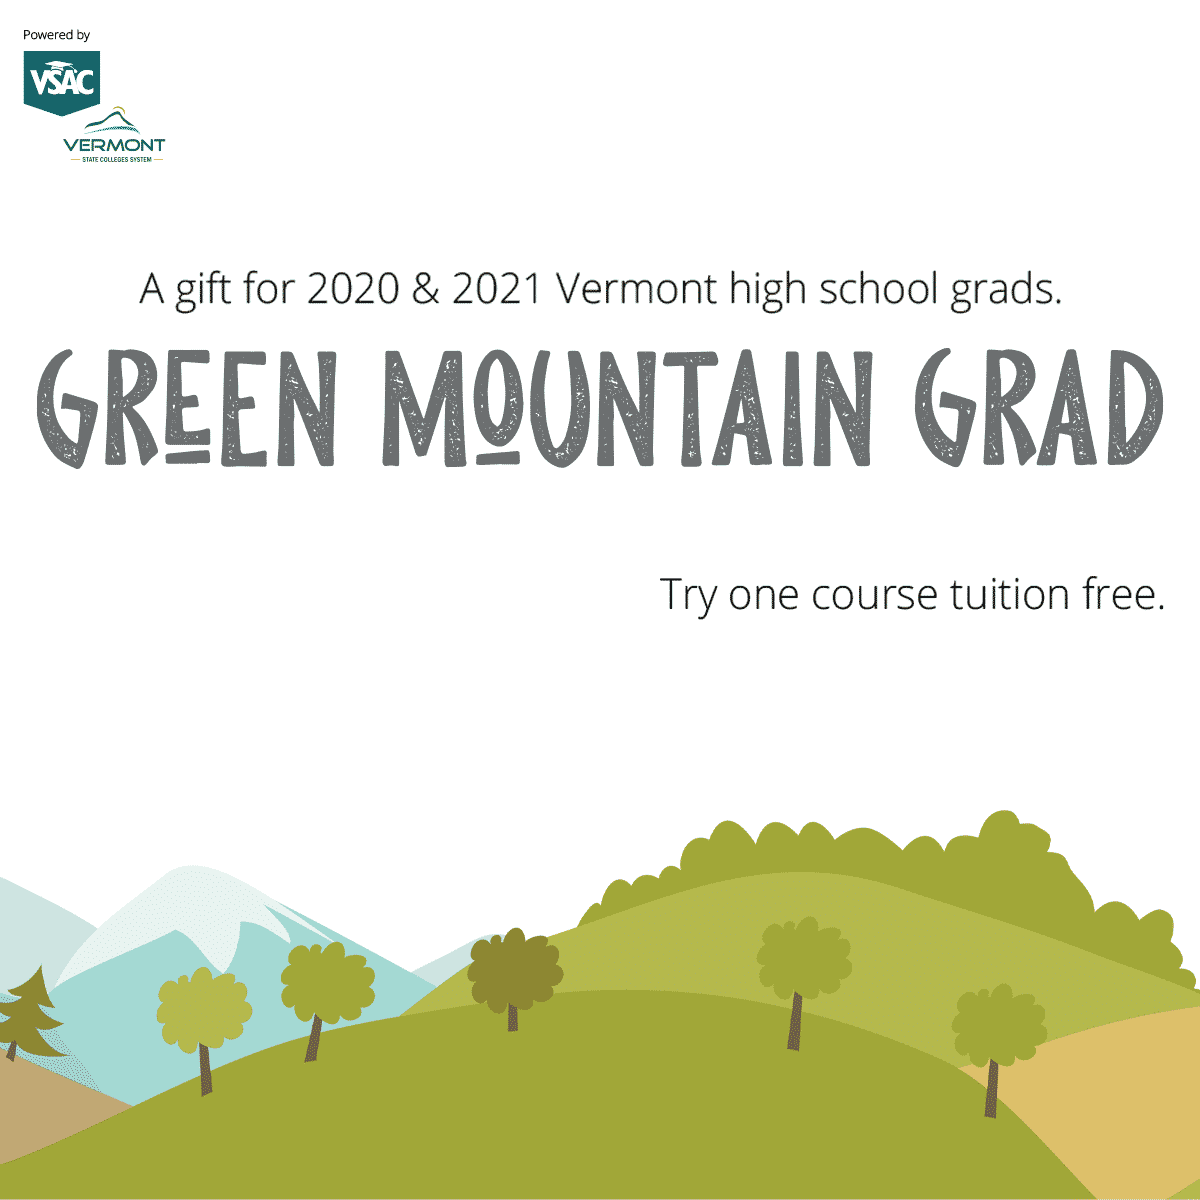 Green Mountain Grad graphic by VSAC